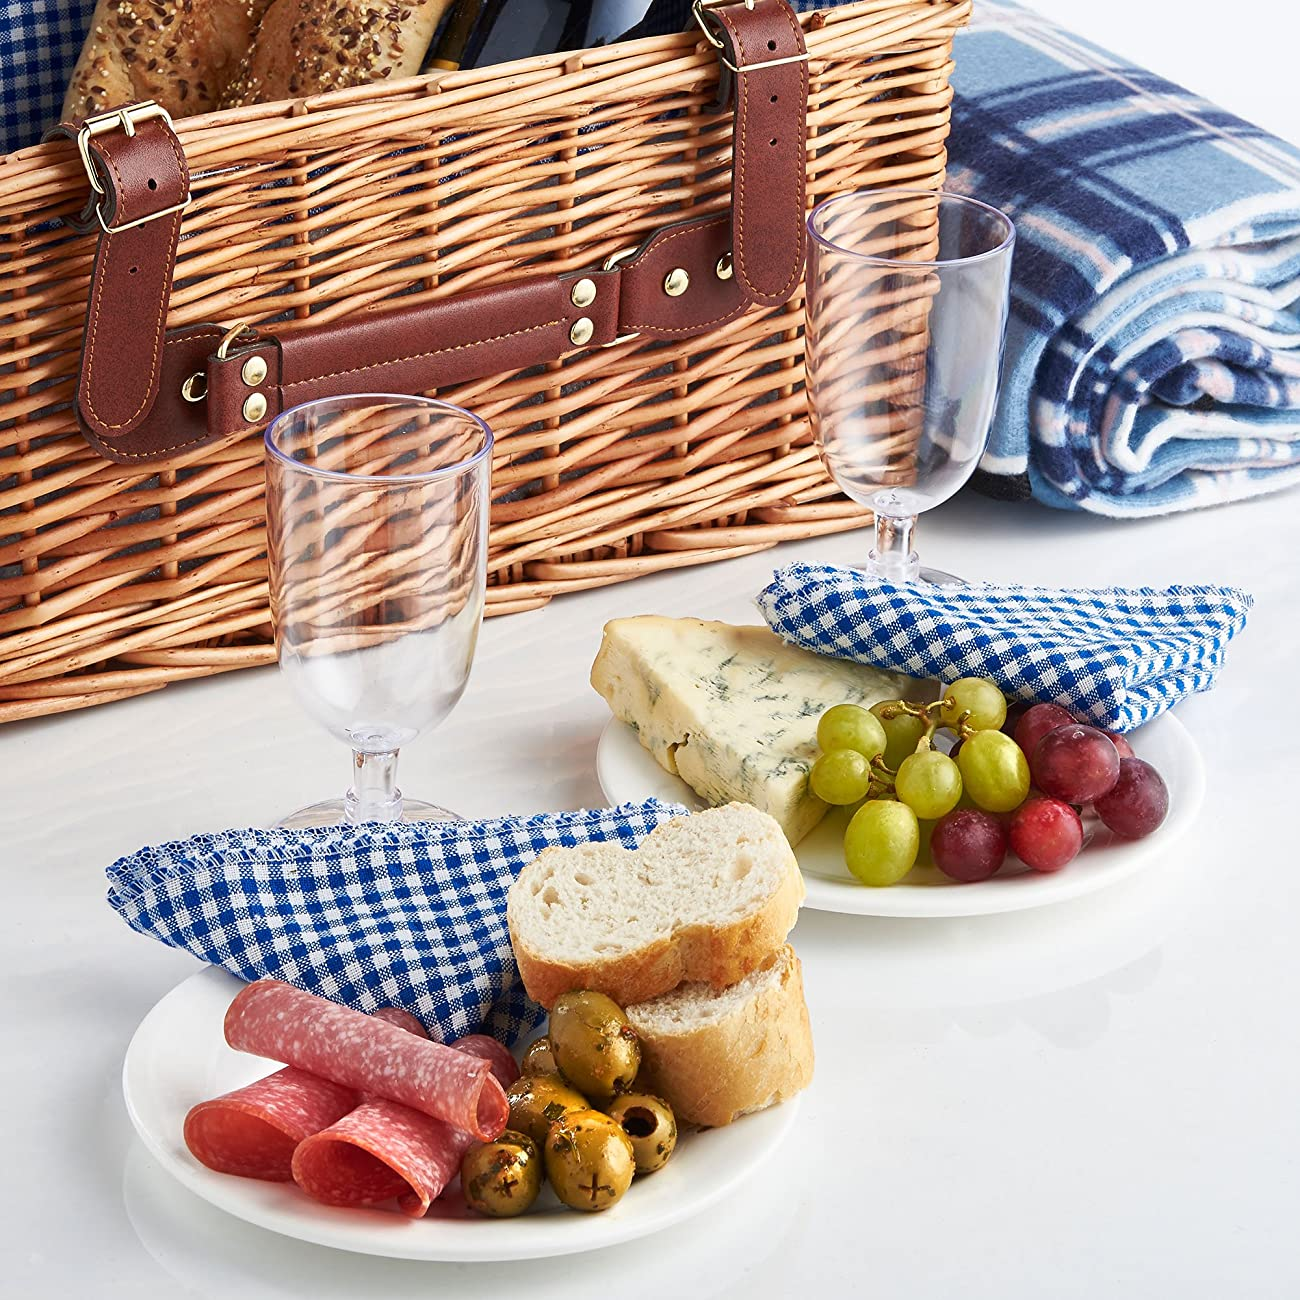 VonShef Deluxe 2 Person Traditional Wicker Picnic Basket Hamper with Cutlery, Plates, Glasses, Tableware & Fleece Blanket 2